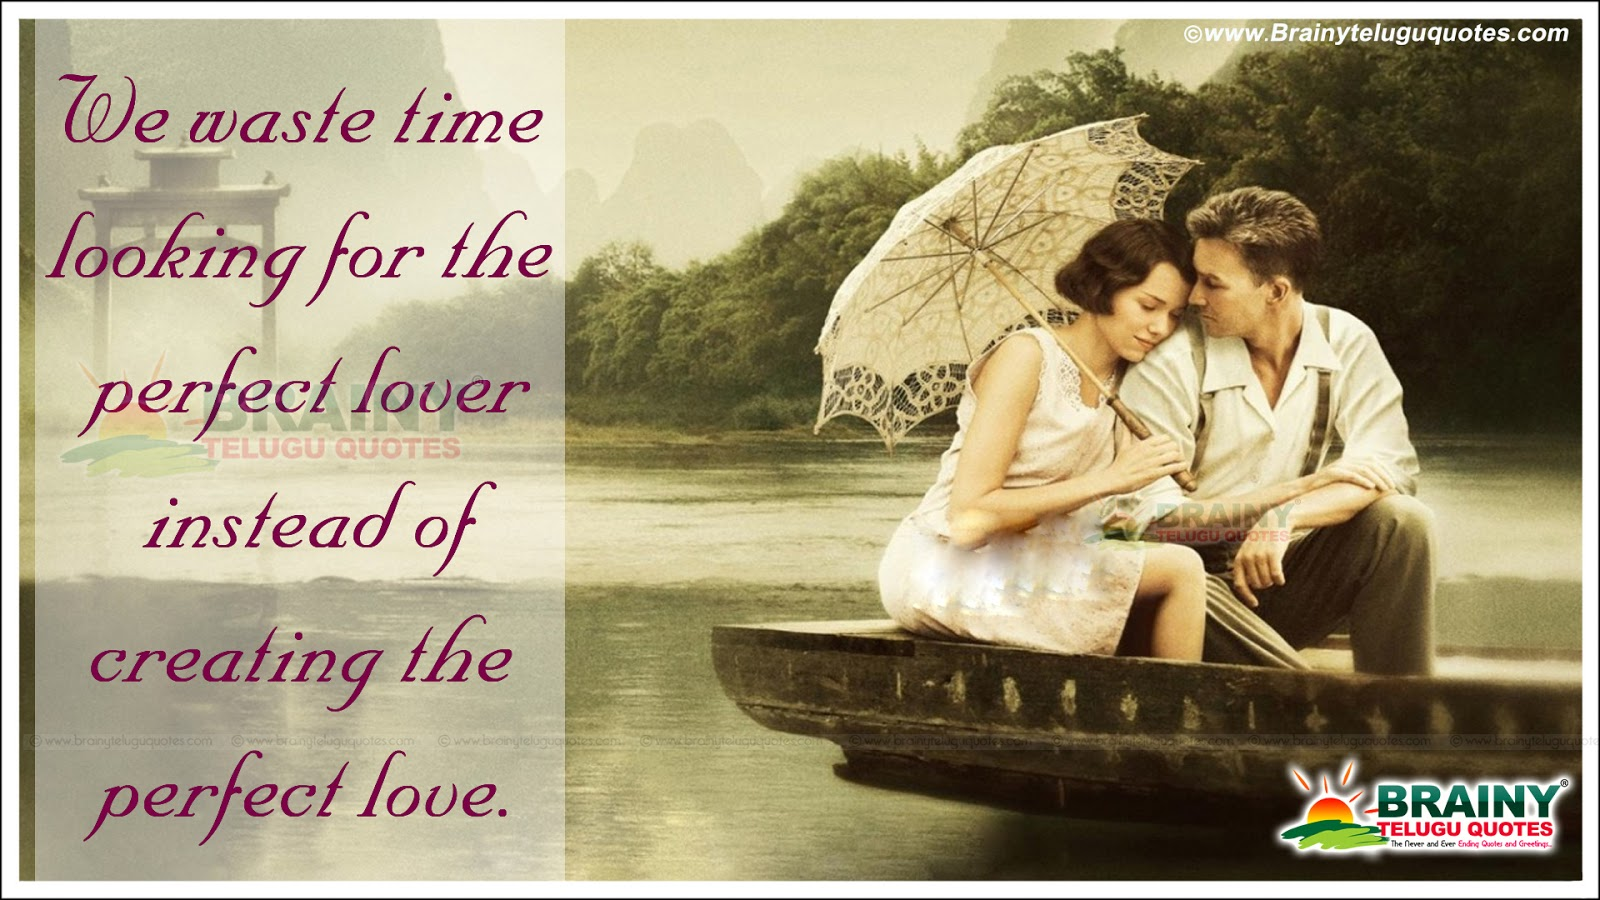 100 cute whatsapp status love quotes from the heart